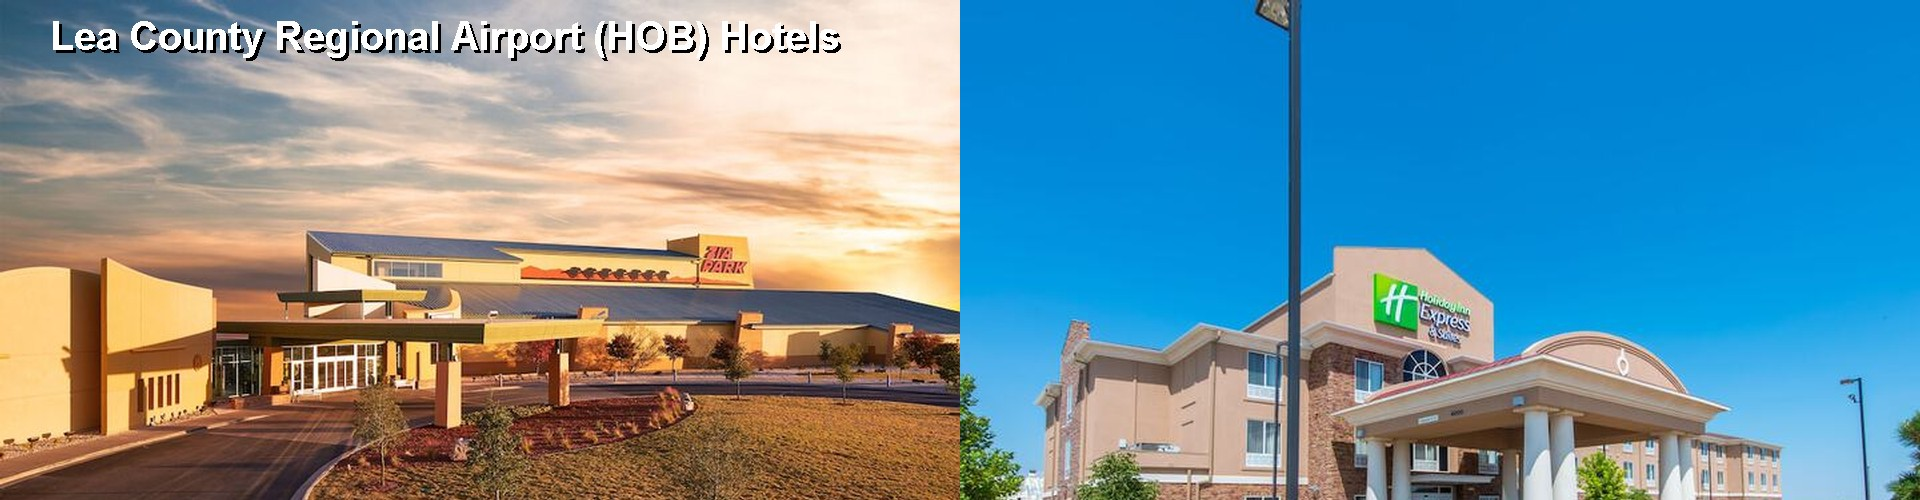 5 Best Hotels near Lea County Regional Airport (HOB)